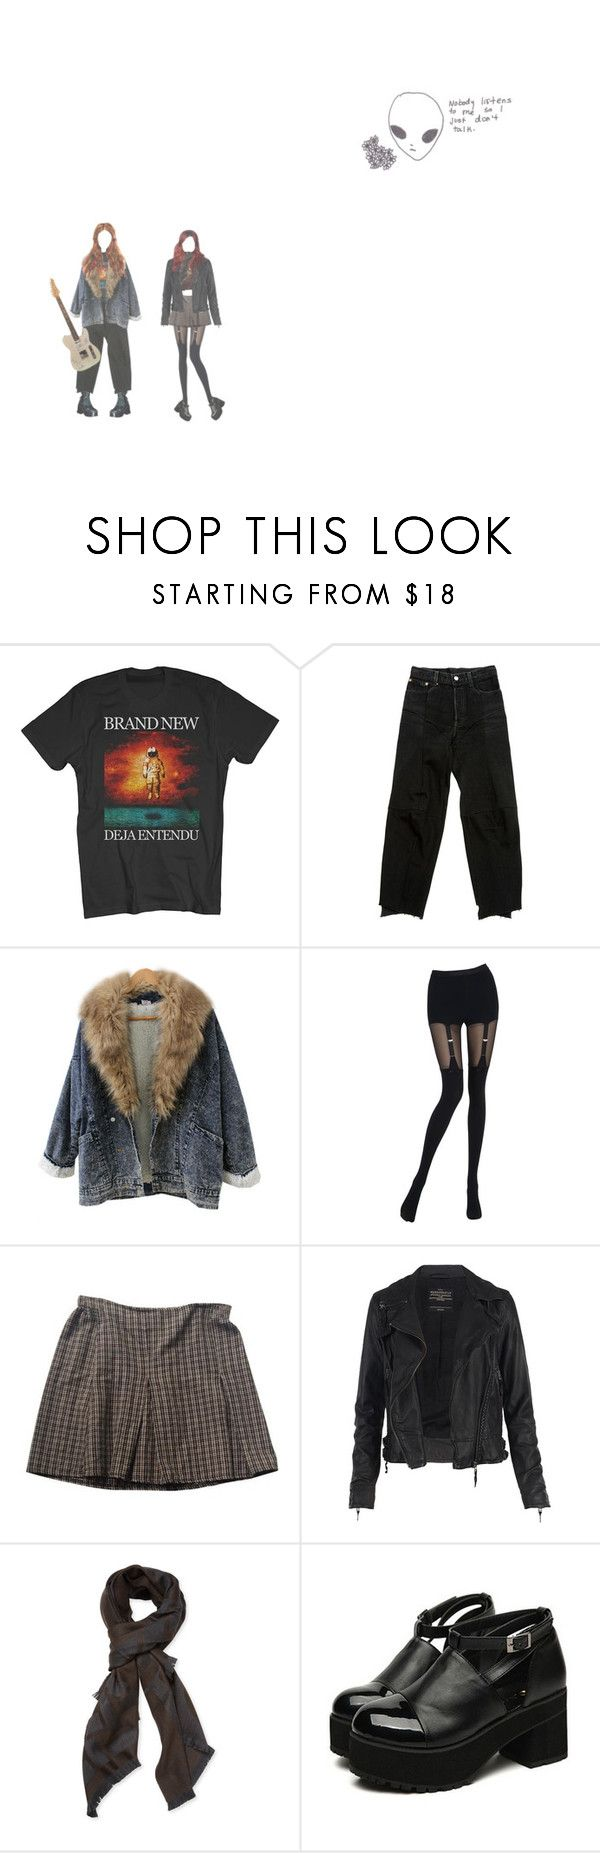 """""""speak no evil"""" by unconventional-outfits ❤ liked on Polyvore featuring Chantal Thomass, Brandy Melville, AllSaints and Christian Dior"""